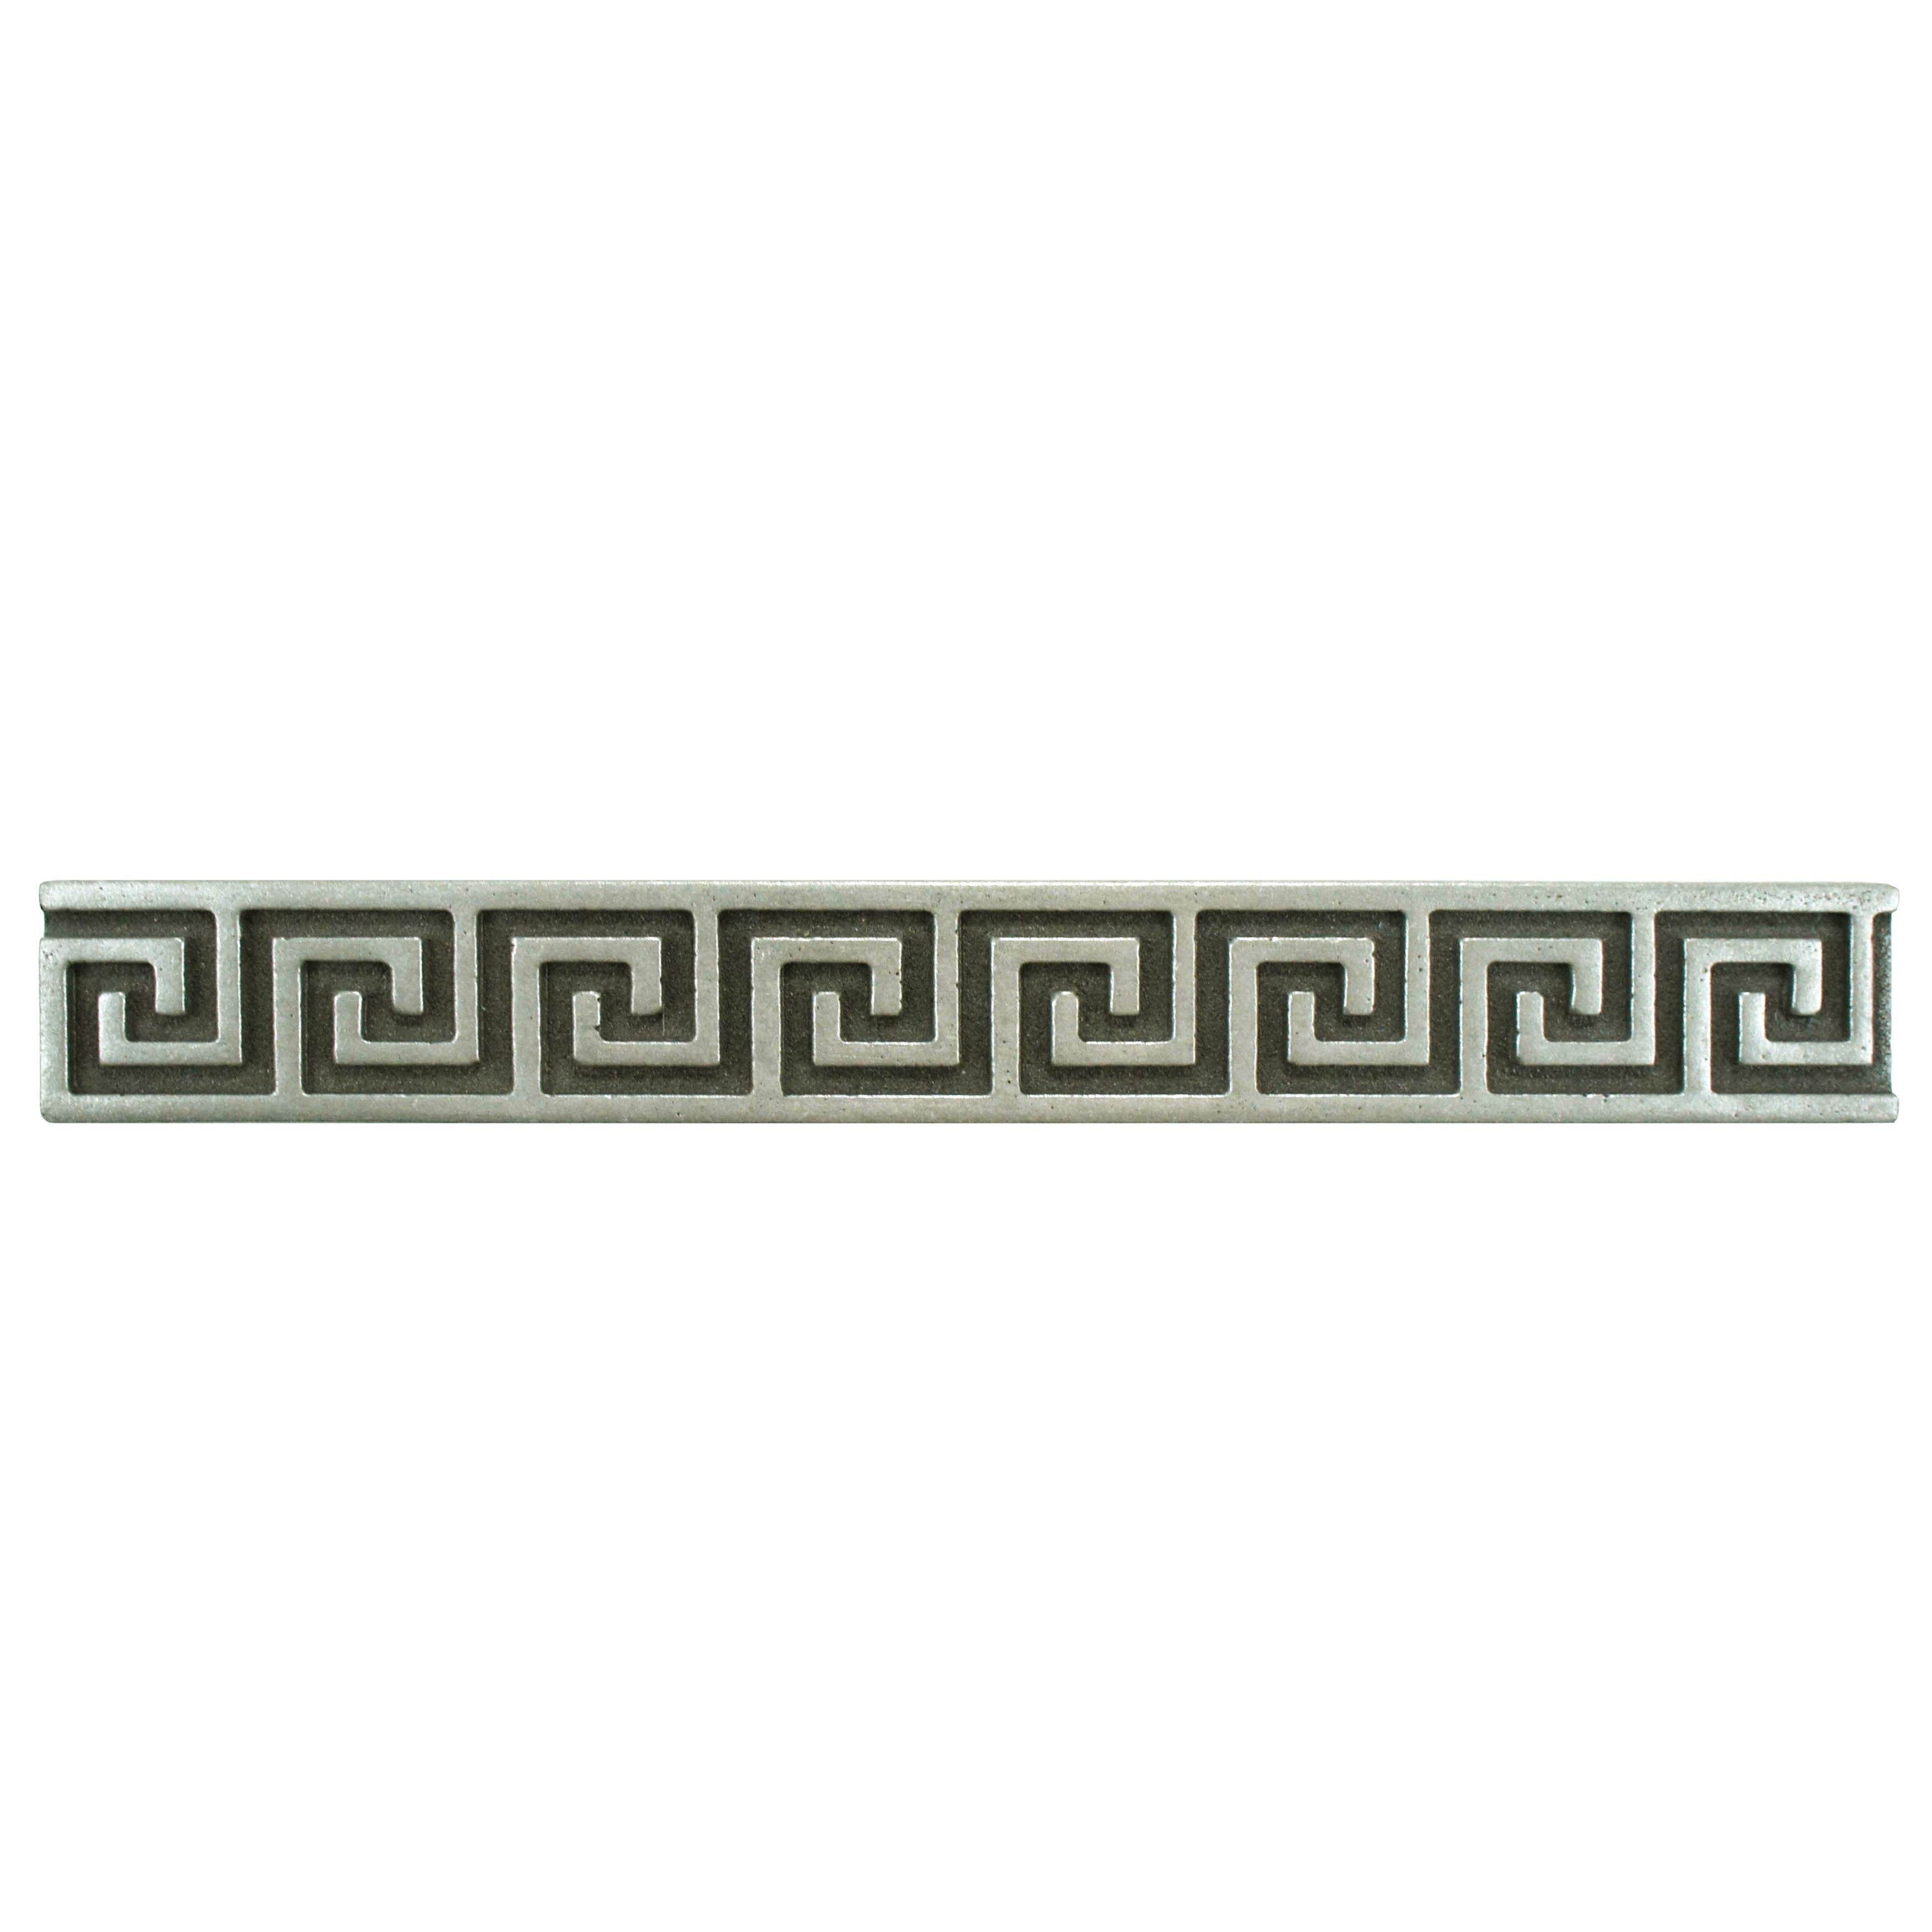 SomerTile 1x8-inch Courant Greek Key Pewter lic Liner Trim Wall Tile